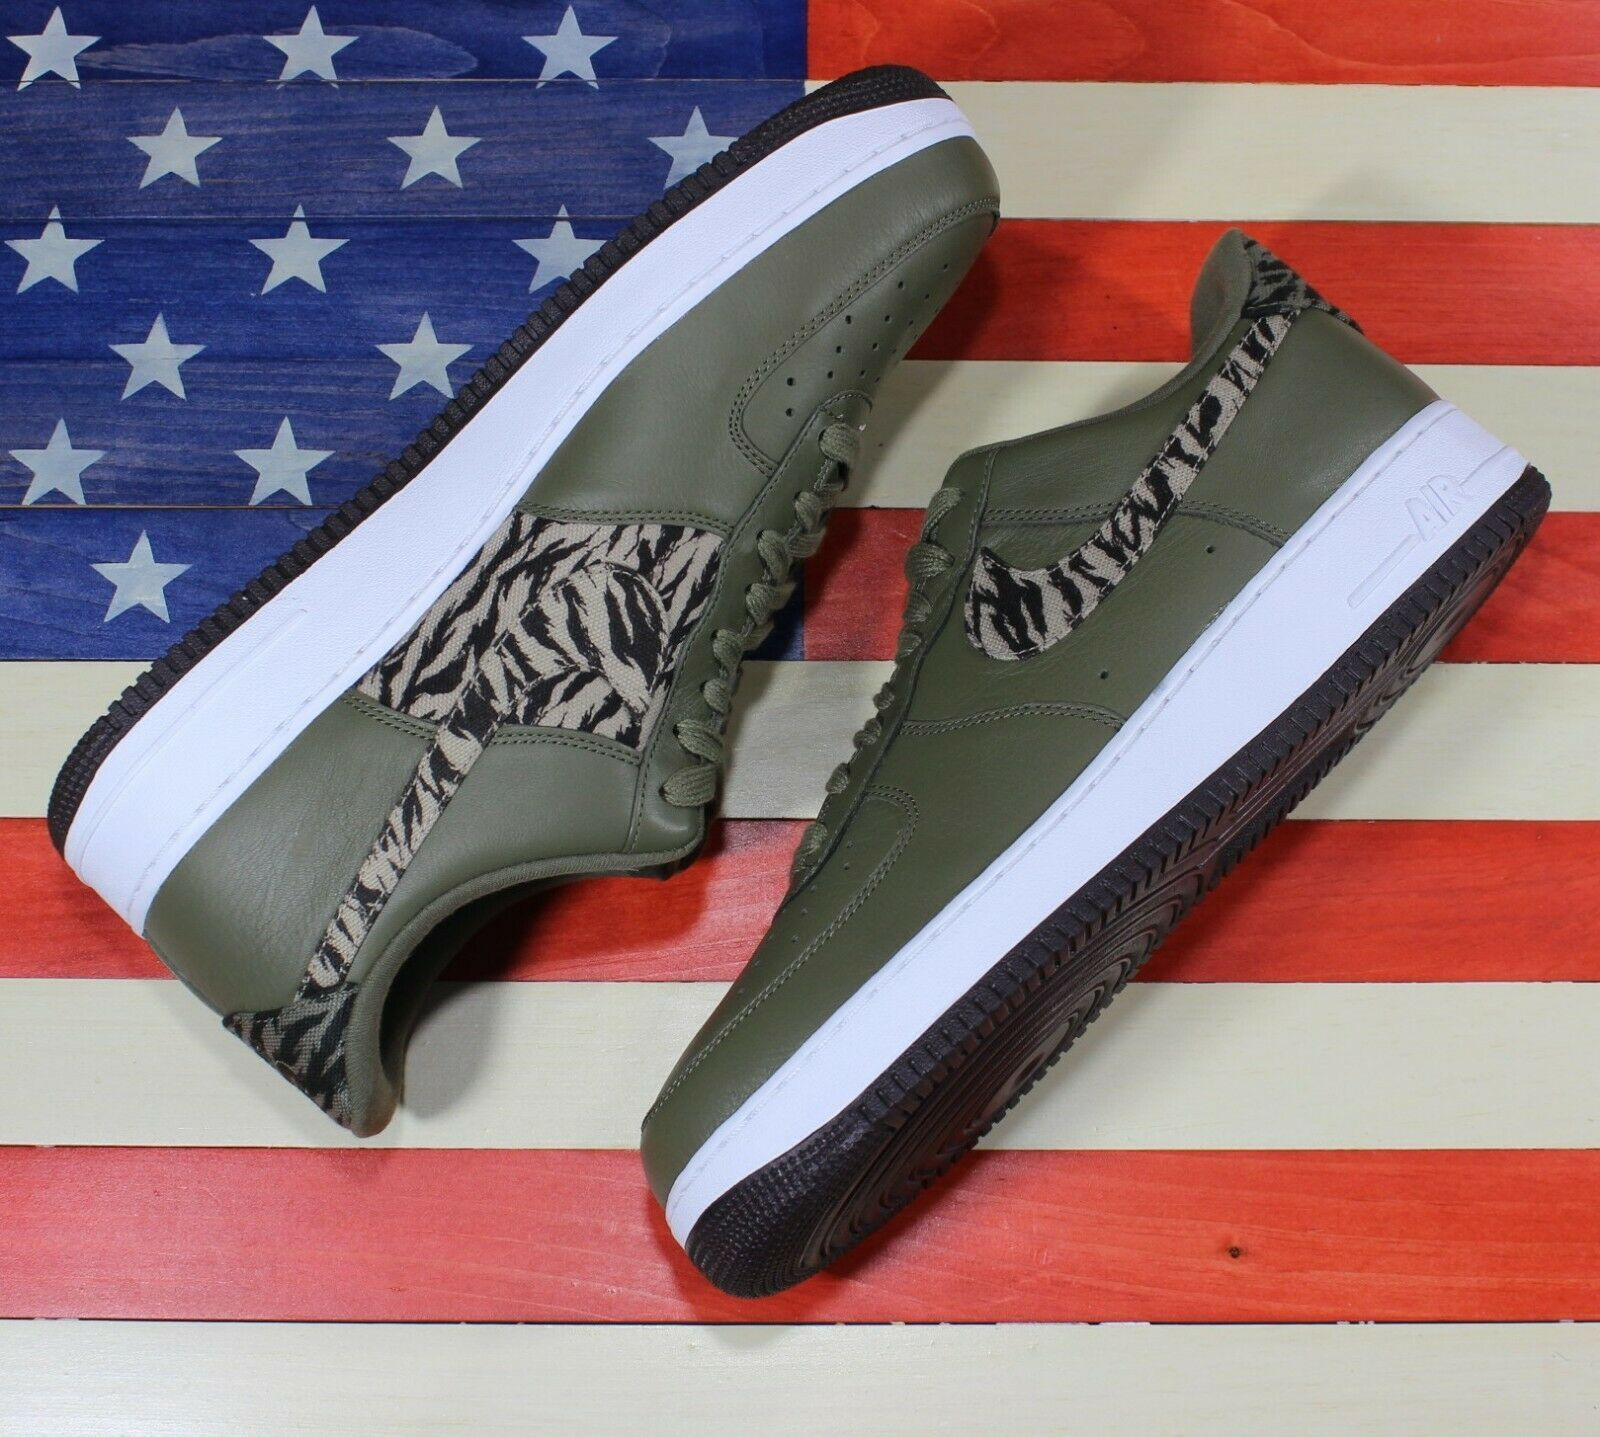 Nike Air Force 1 One Low AOP Basketball Shoes Olive-Green/White [AQ4131-200]- 13 image 7